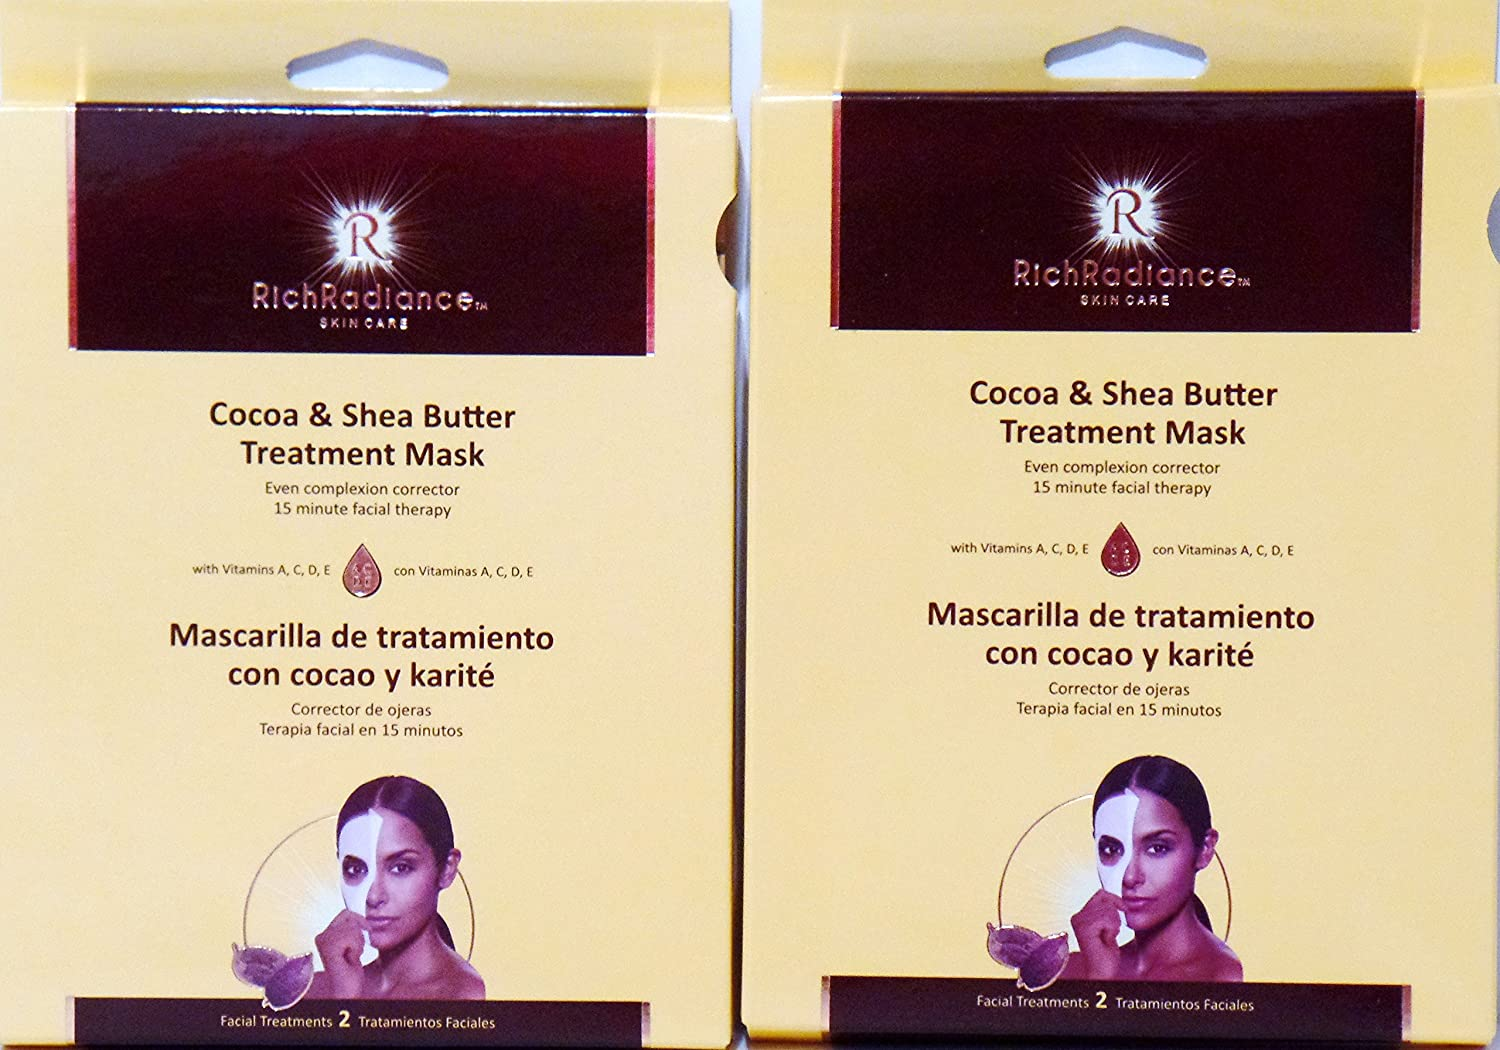 Amazon.com: Cocoa & Shea Butter Treatment Facial Mask by RichRadiance Skin Care (2 Pack): Beauty